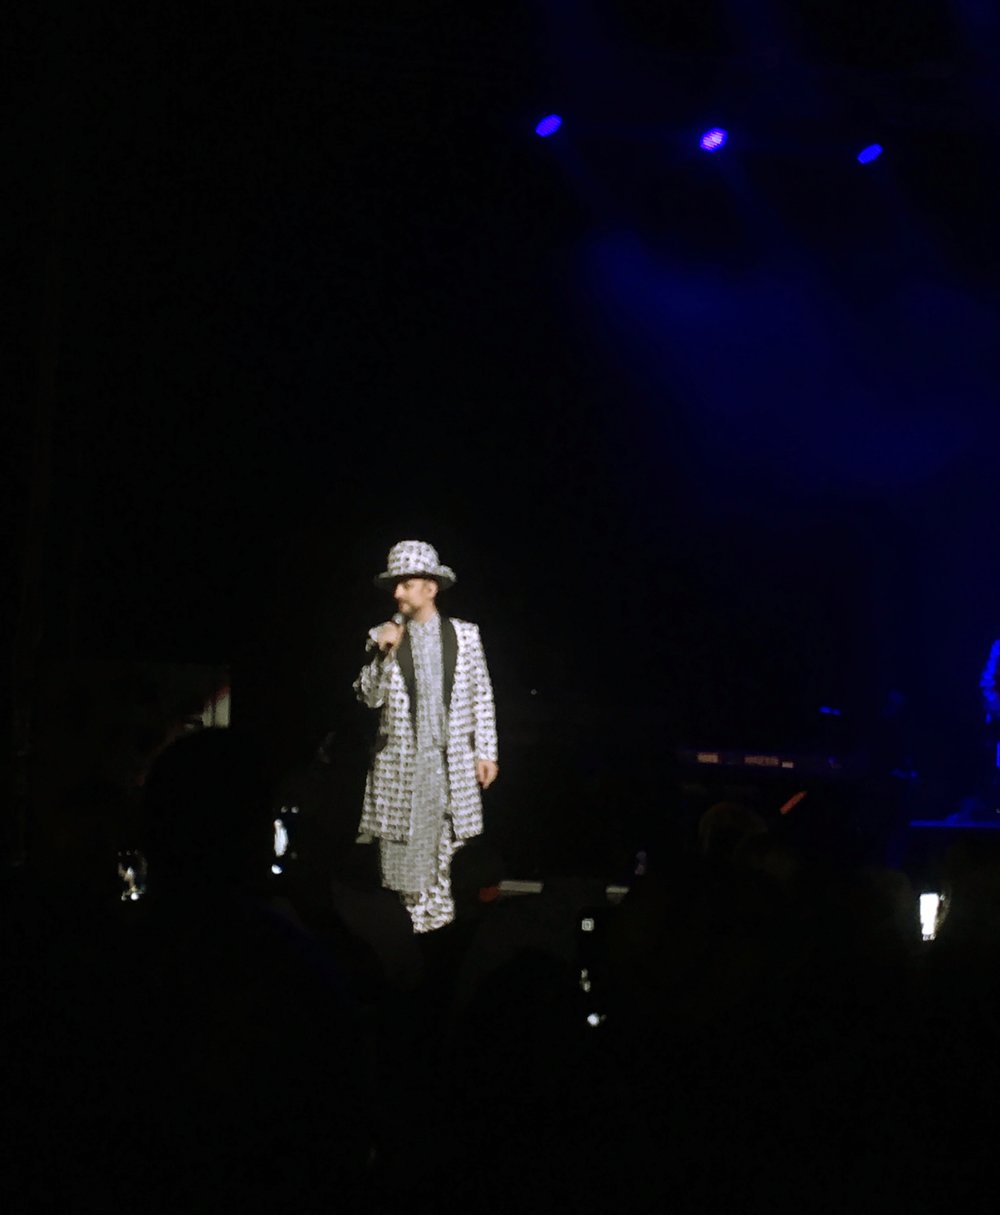 THE HEALING POWERS OF BOY GEORGE IN CONCERT….TAKEN BY EMMA-JANE (iPhoneSE)